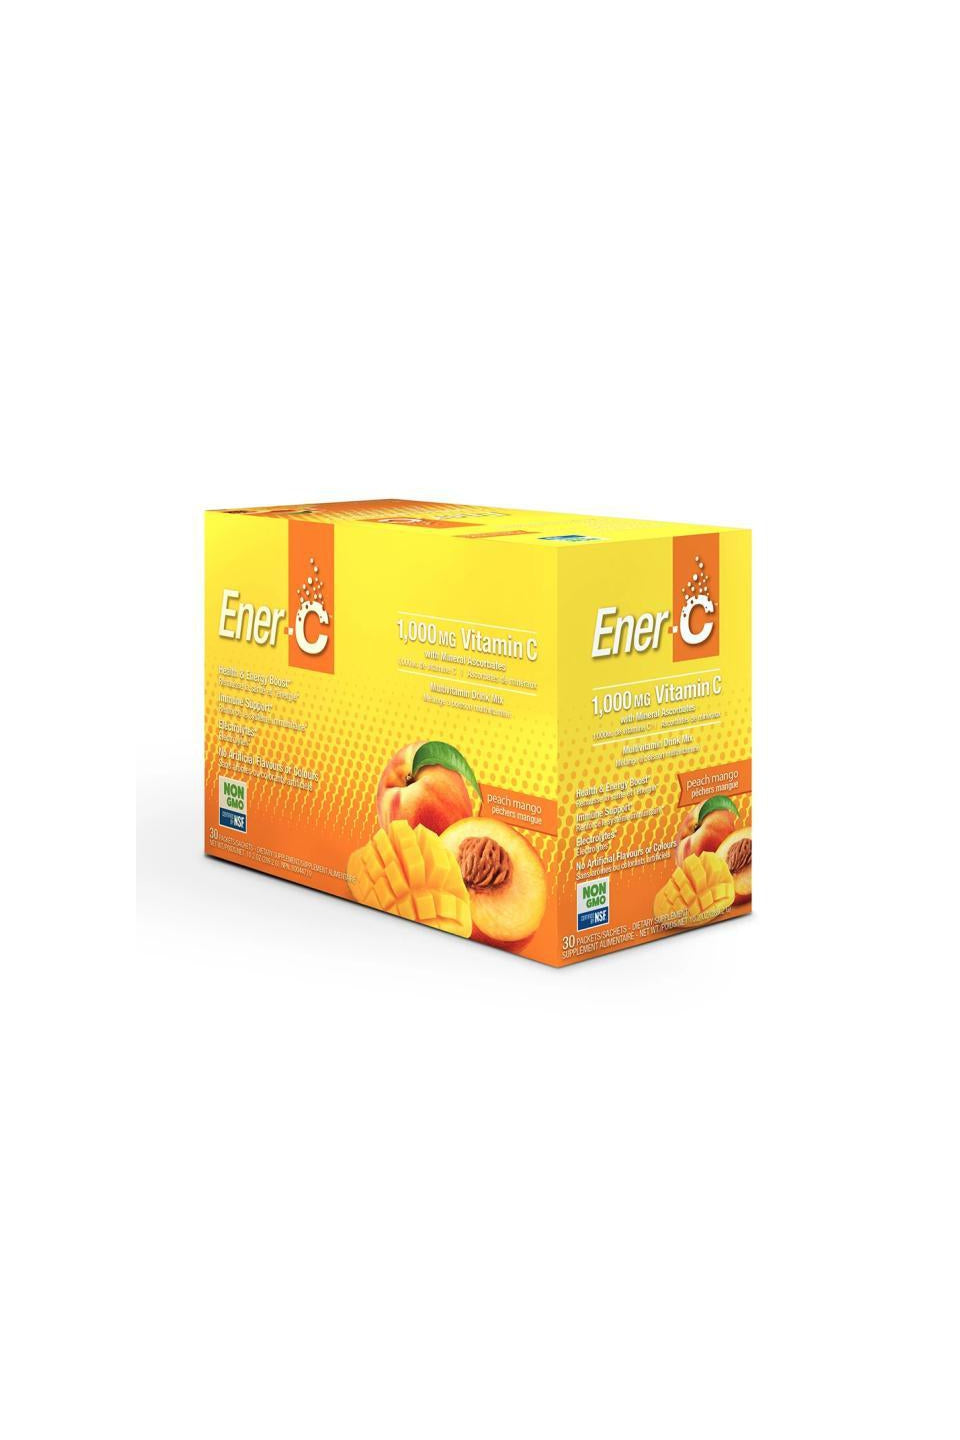 Ener-C Peach Mango Multivitamin Drink Mix - 1,000mg Vitamin C (Case of 30)